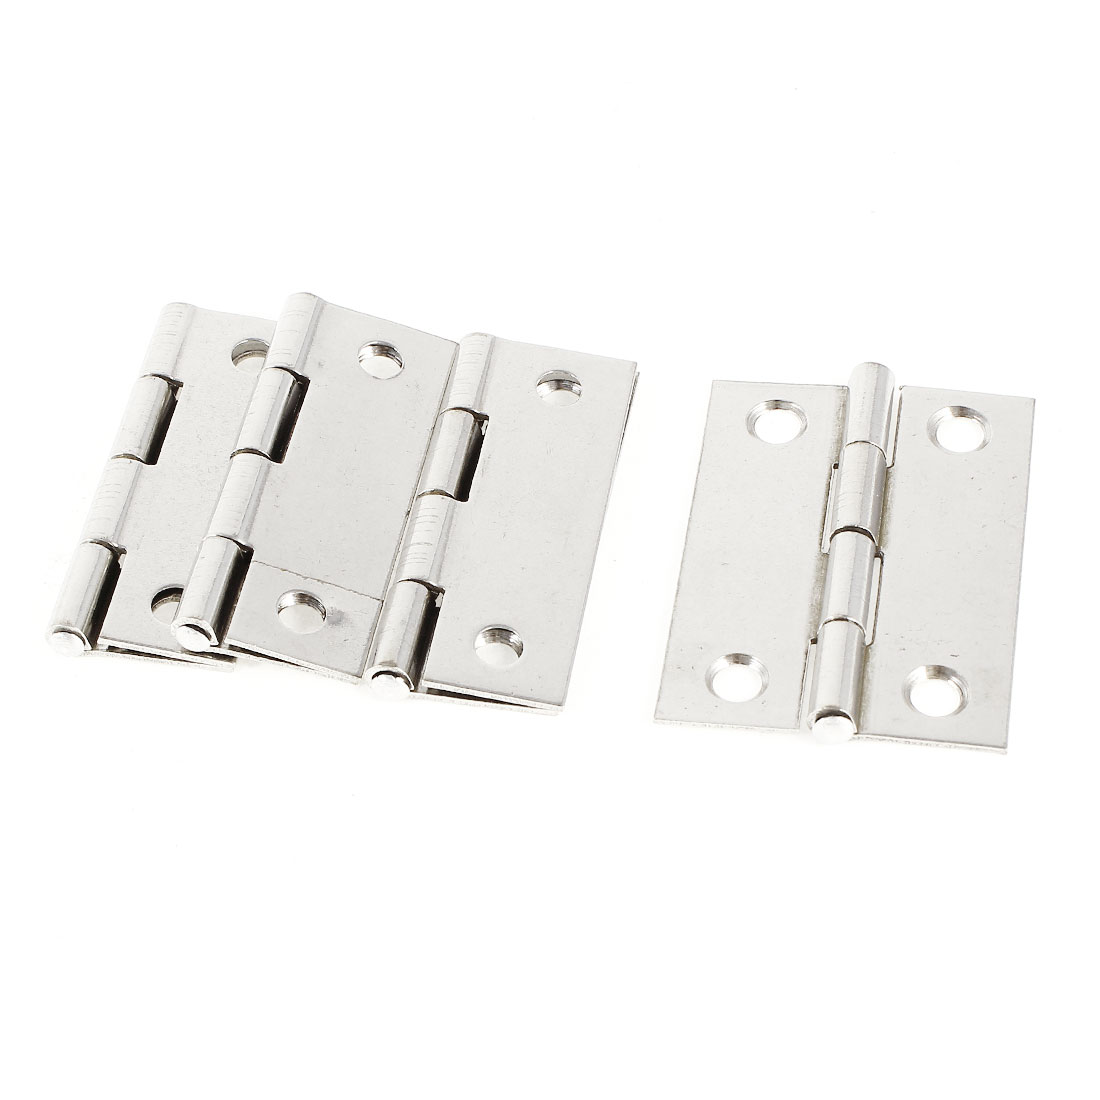 "4 Pcs 1.7"" 44mm Length Stainless Steel Window Door Butt Hinges Silver Tone"